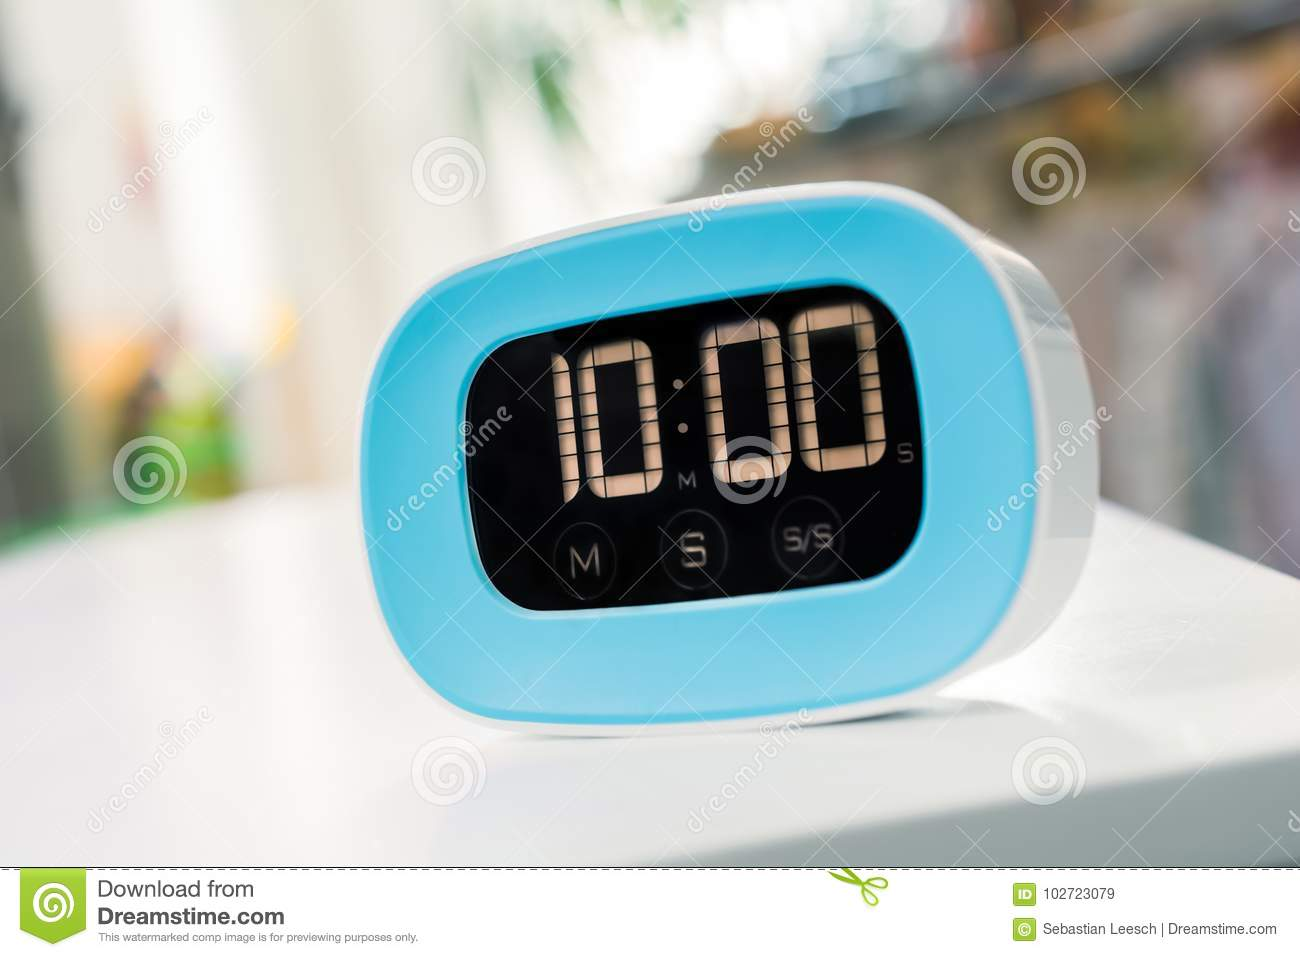 Timer With About 10 Minutes Digital Blue Kitchen On White Table Stock Image